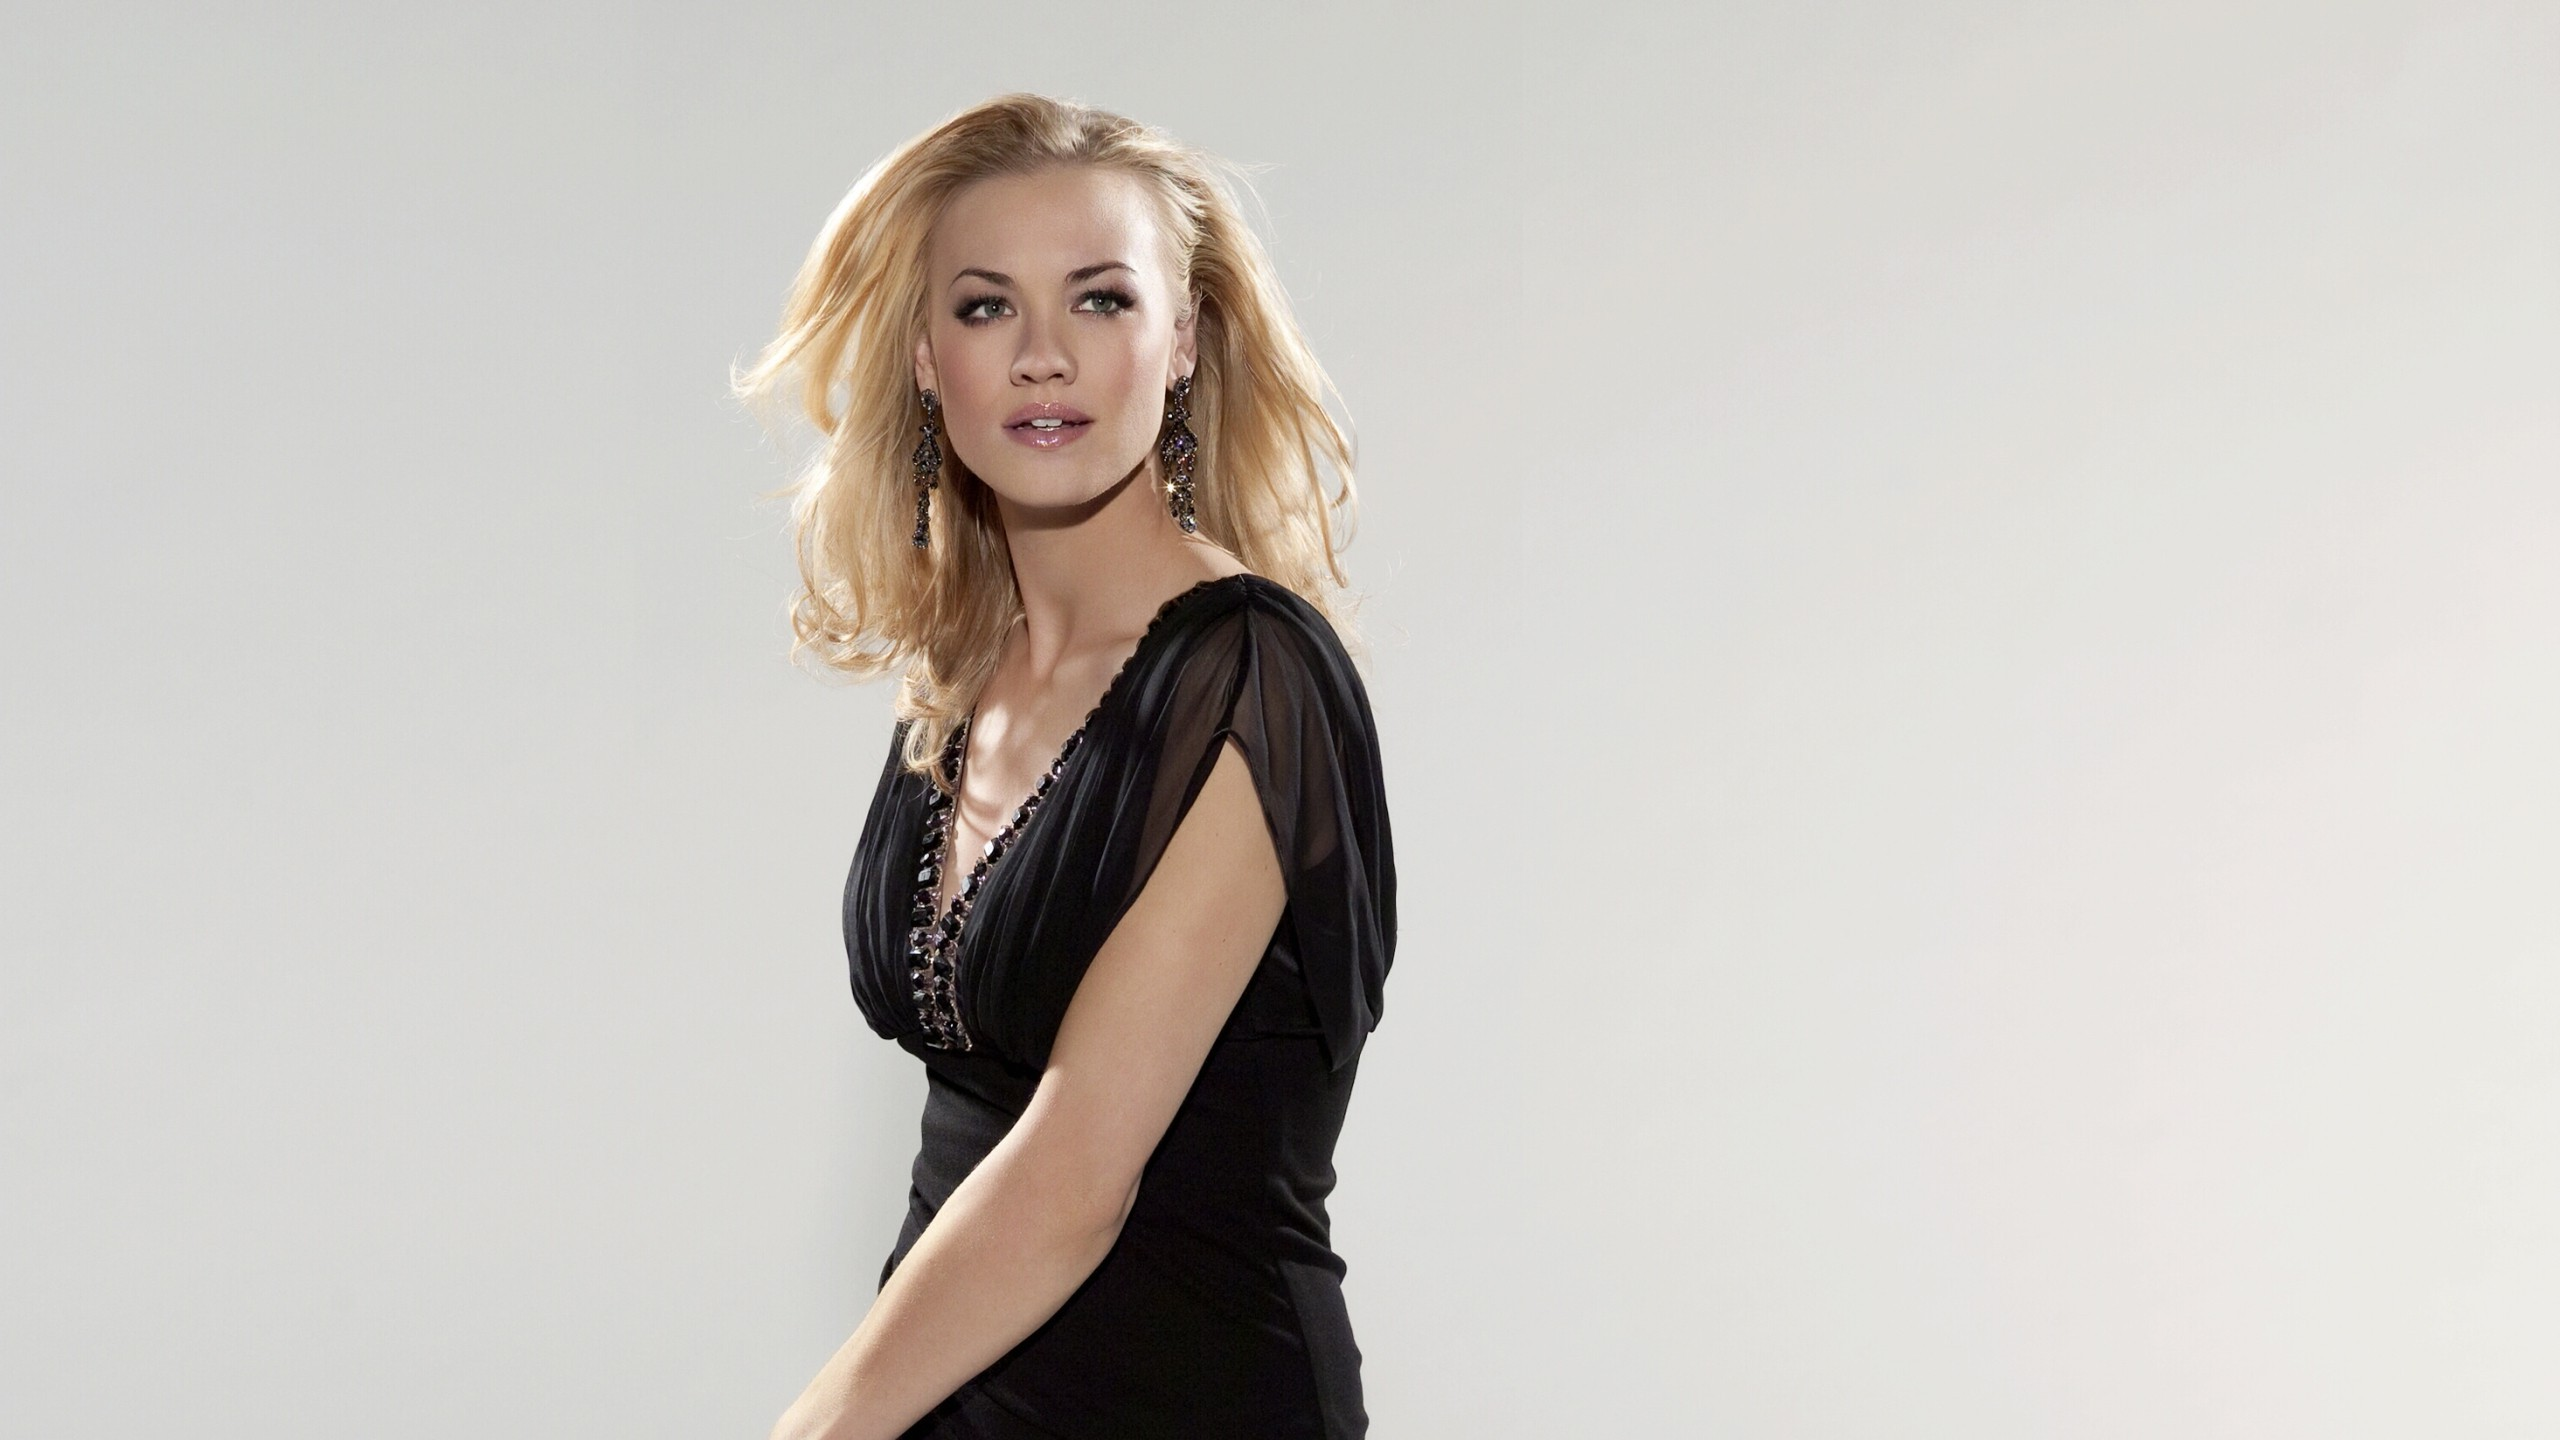 Yvonne Strahovski Wallpaper HD 7782 2560 x 1440 2560x1440